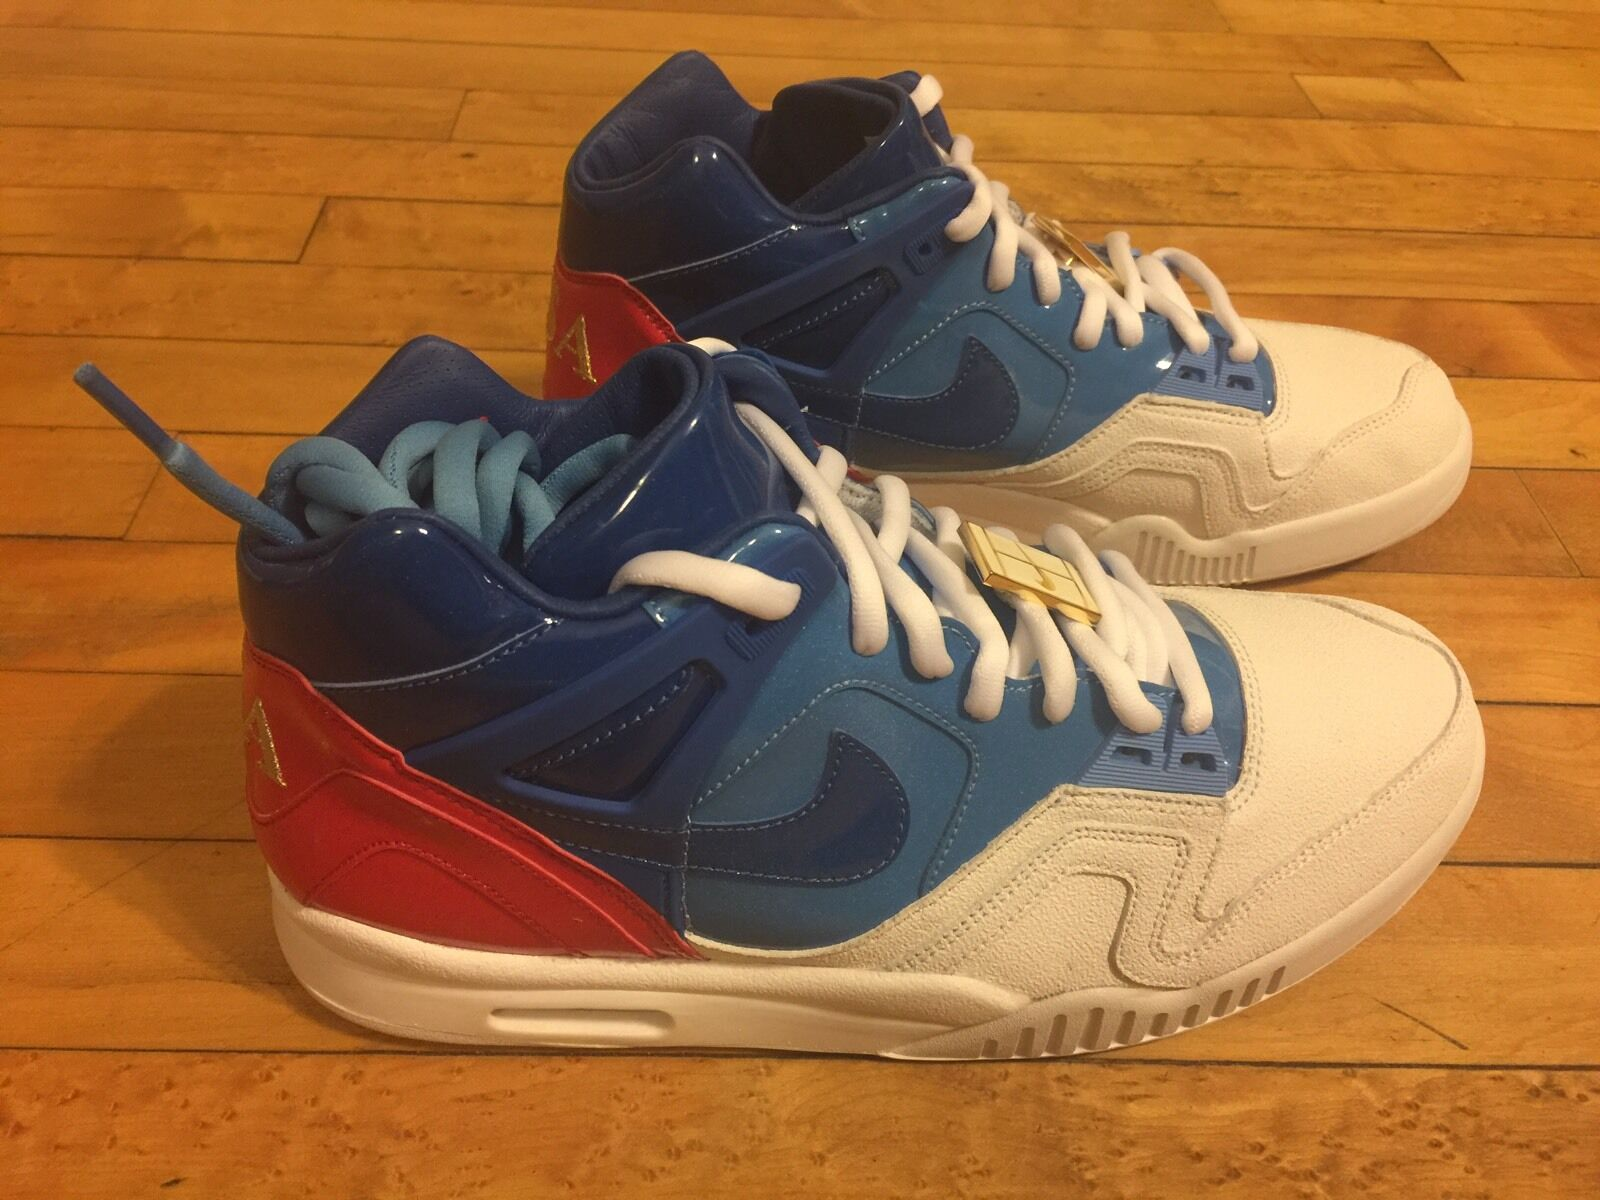 NIKE AIR TECH CHALLENGE SZ10 II SP US OPEN SZ10 CHALLENGE 621358-146 NIKE LAB NSW MERCER QS 5d3994